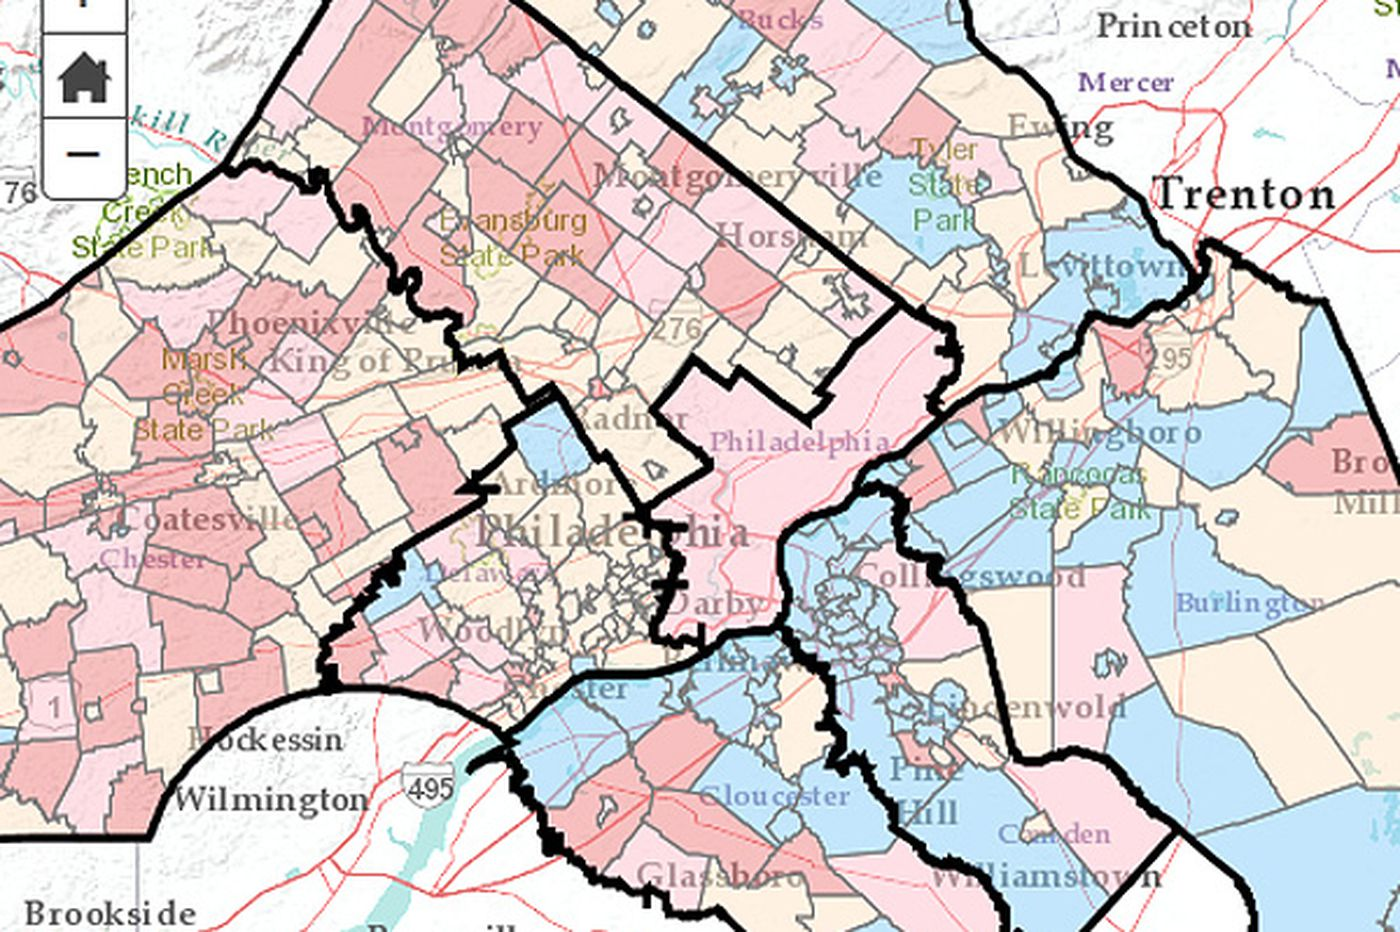 Gains and losses in Phila. region's population